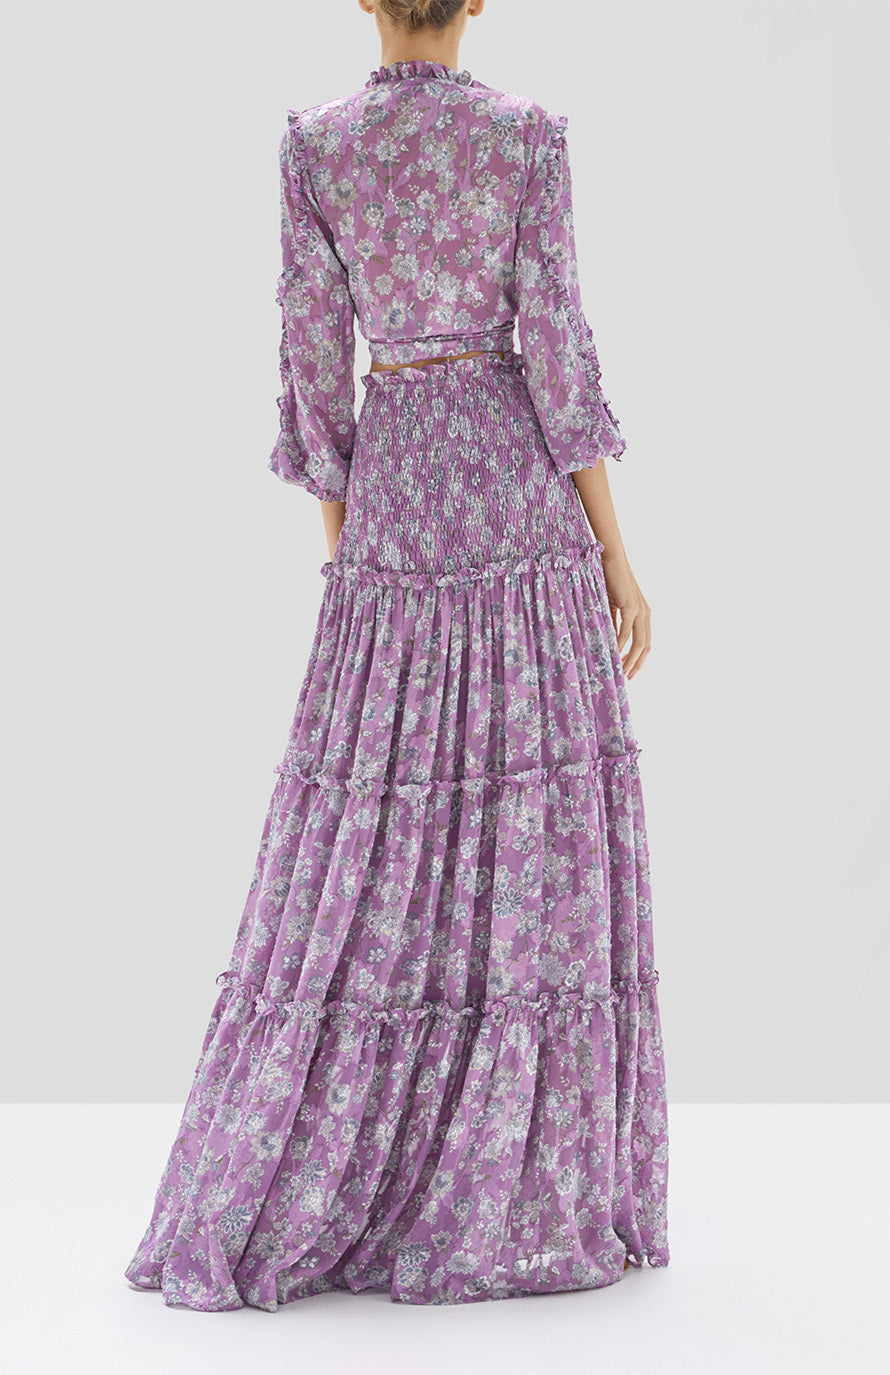 Odilo Top and Galarza Skirt in Lilac Floral from our Pre Spring 2020 Ready to wear collection. - Rear View